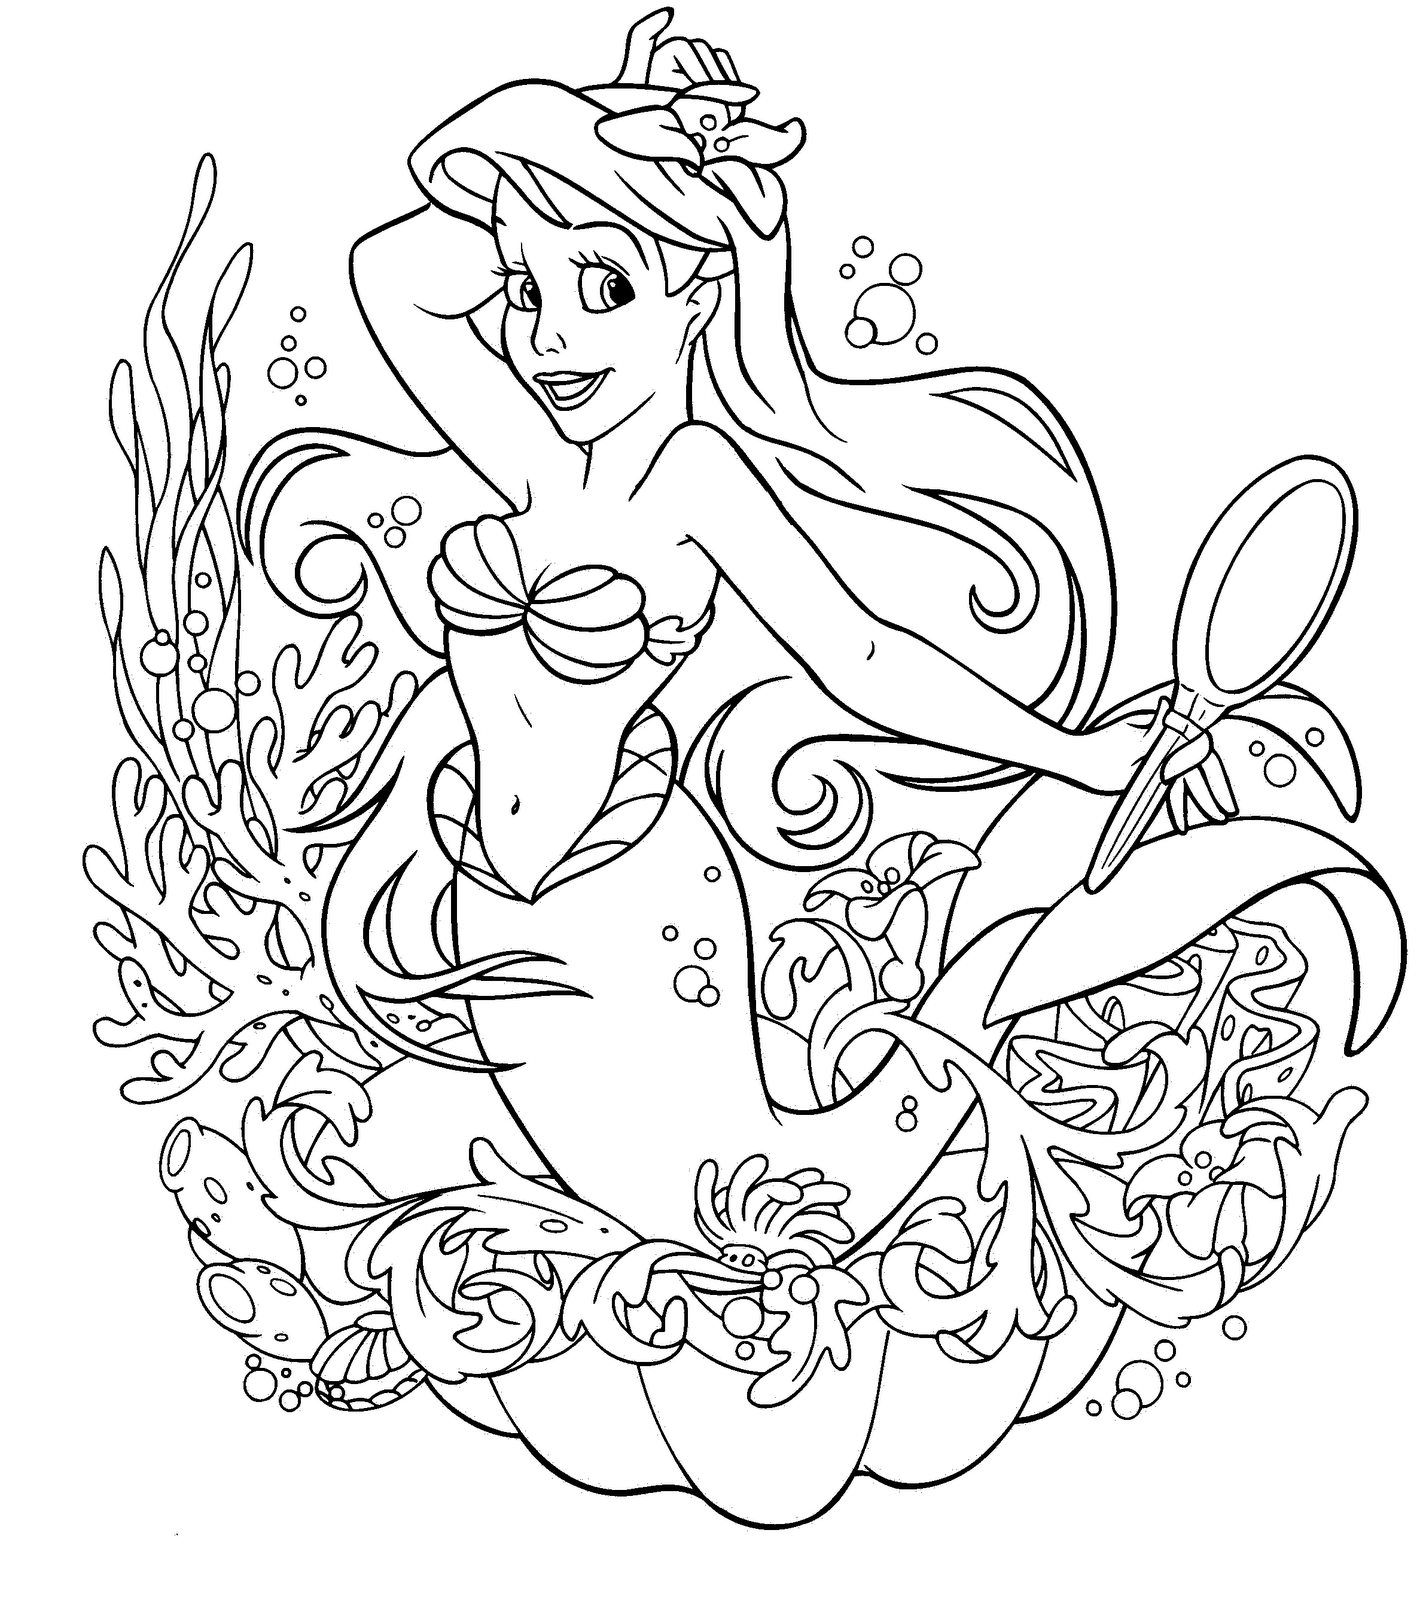 coloring pages printable disney - Disney Princess coloring pages printable games